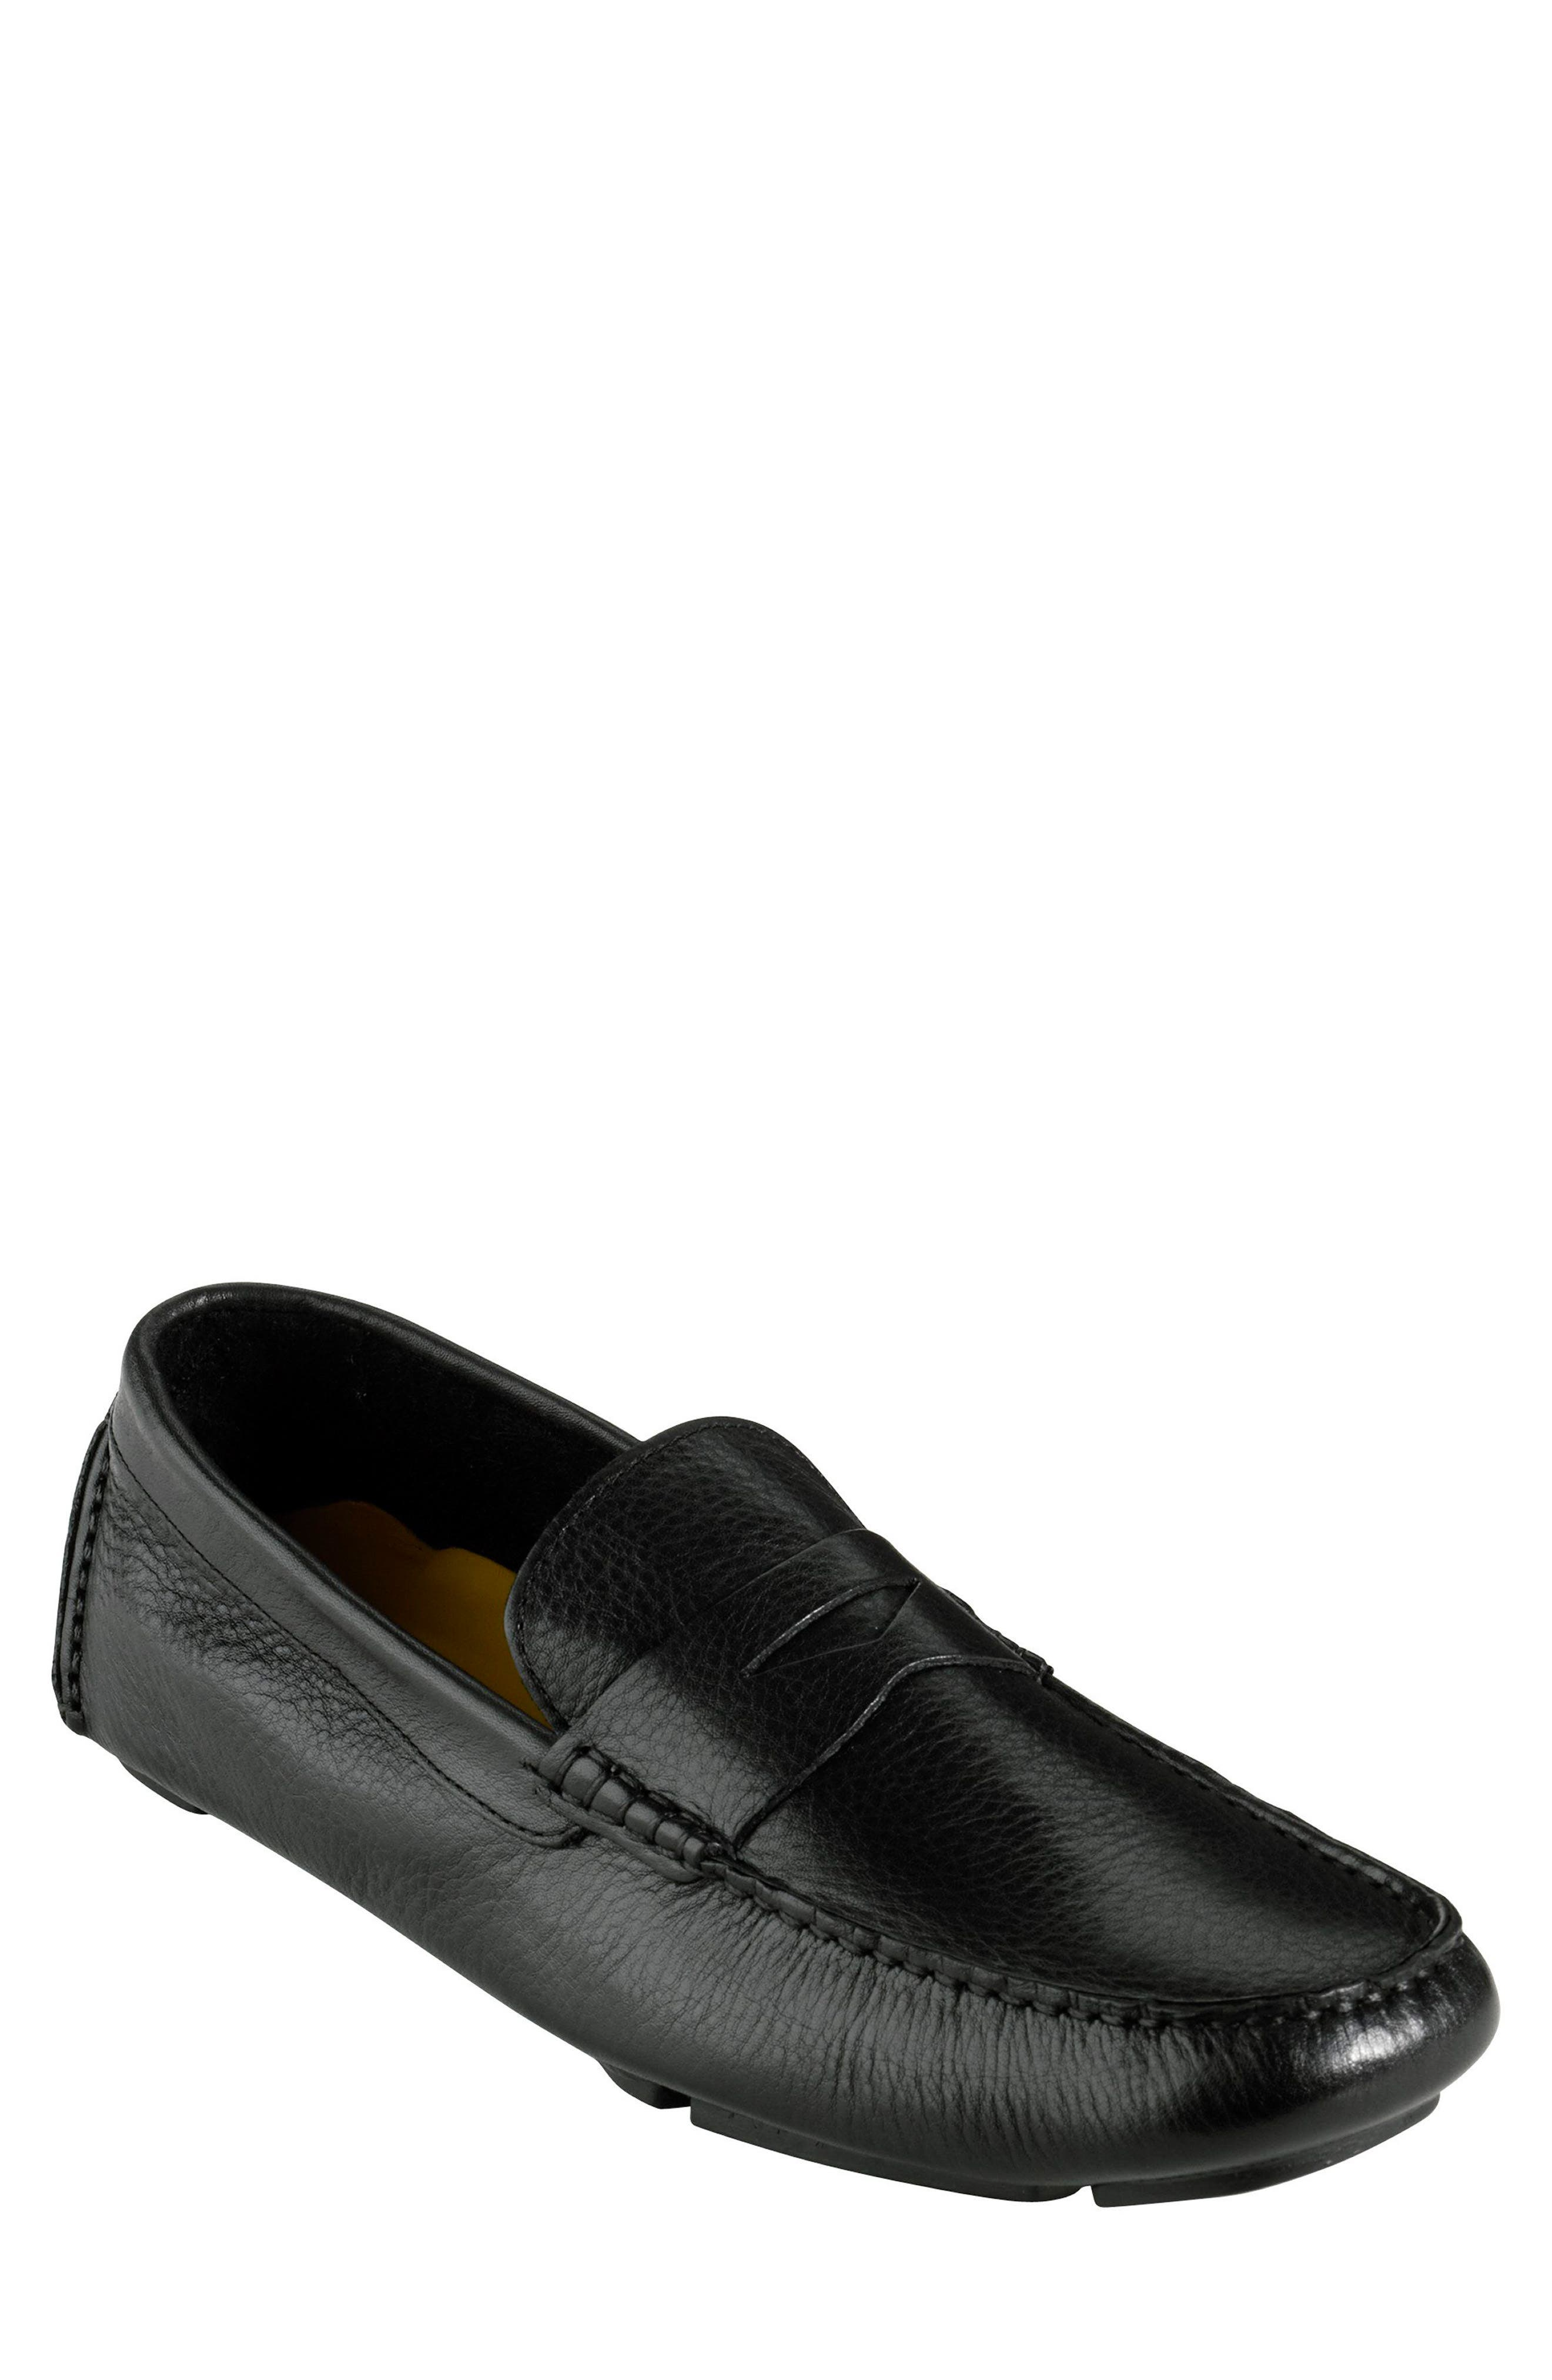 'Howland' Penny Loafer,                             Alternate thumbnail 2, color,                             BLACK TUMBLED